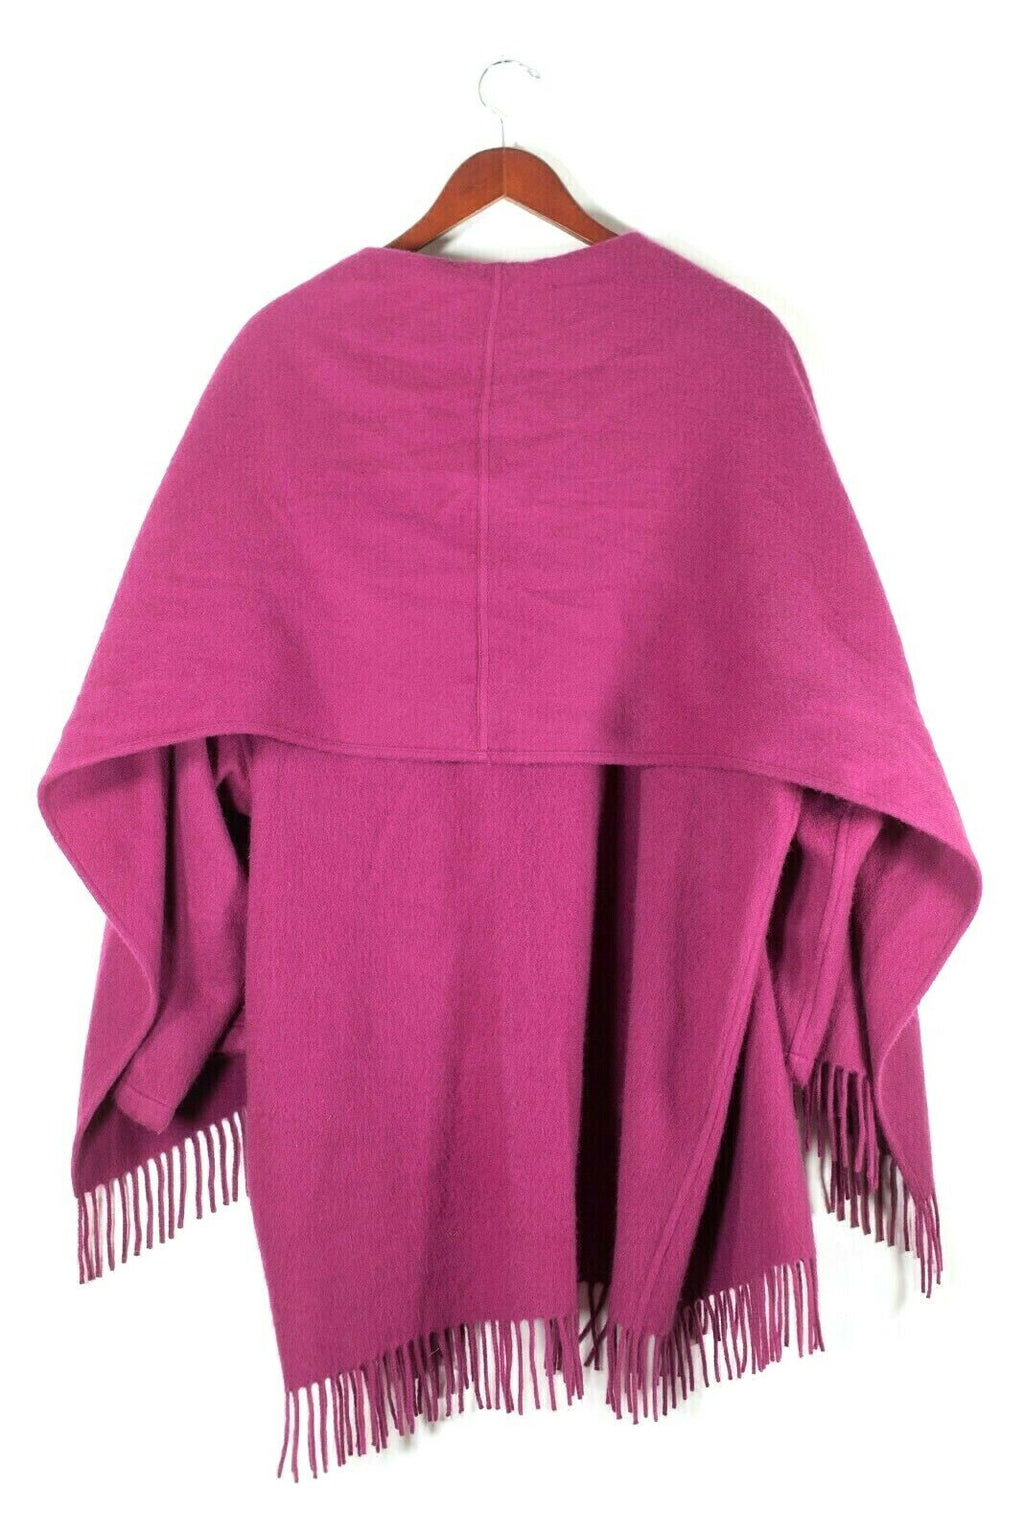 Salvatore Ferragamo Womens Small Pink Jacket Cashmere Cardigan Fringe Edge Coat